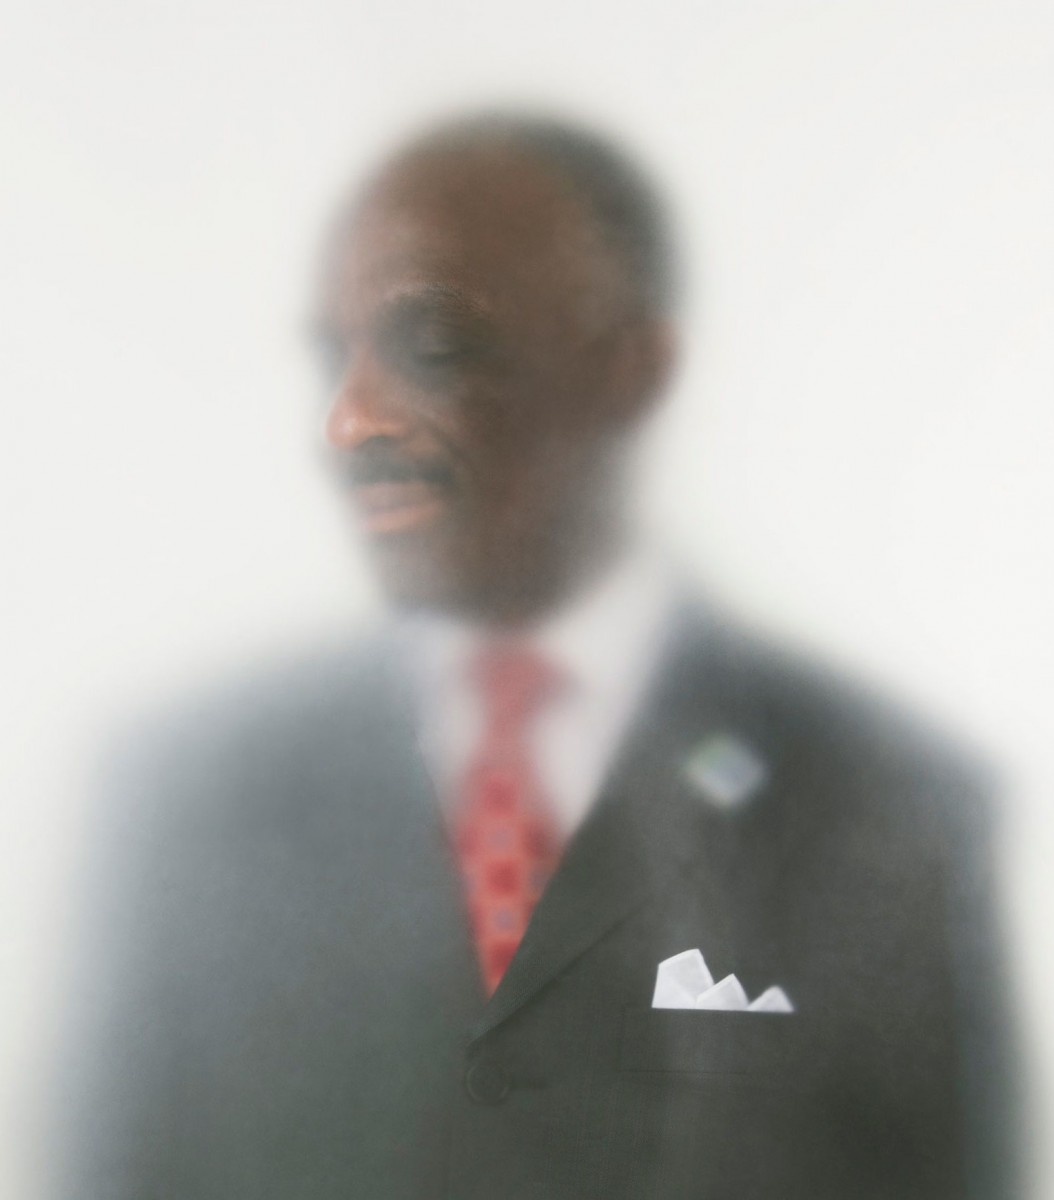 A man wearing a suit with a red tie